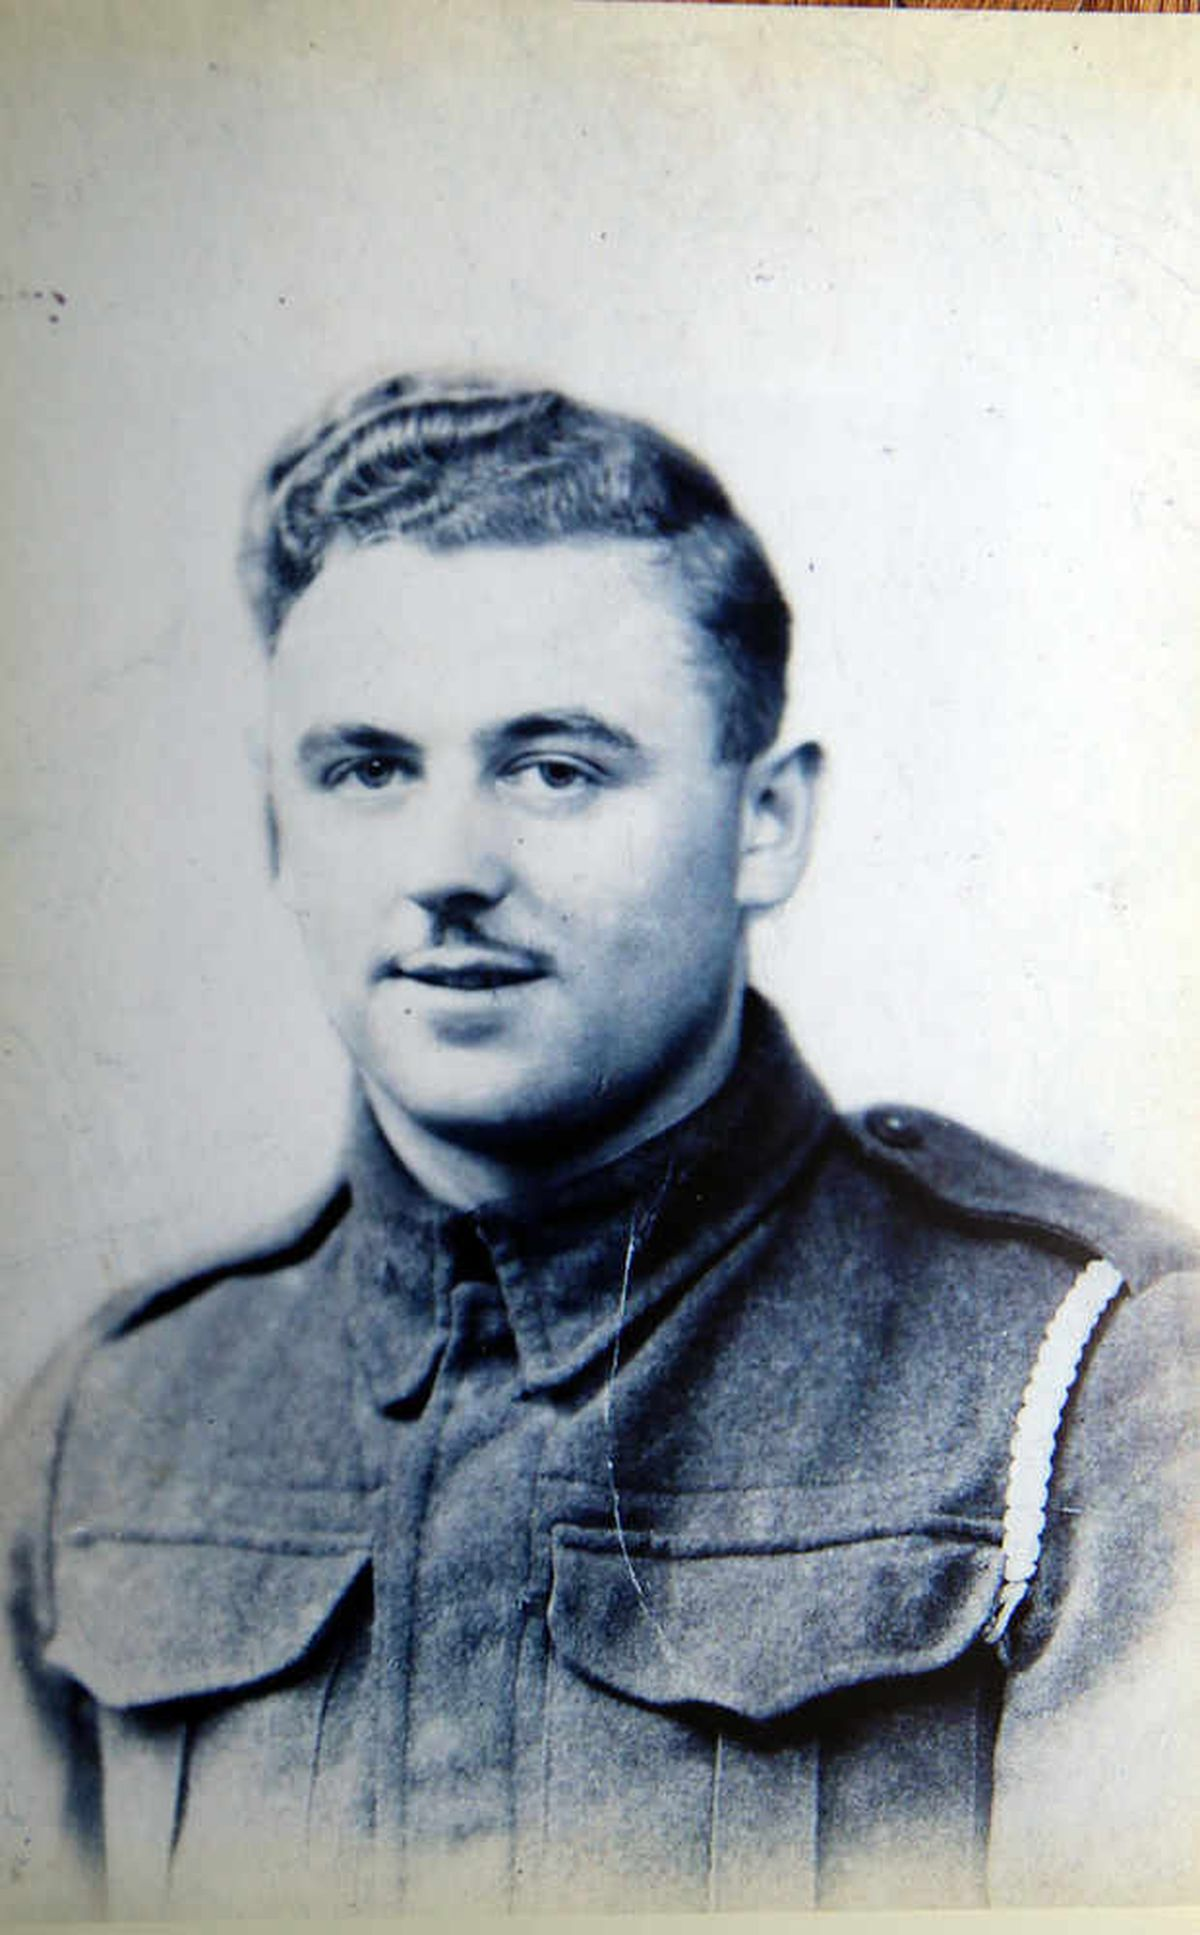 Robert Fletcher in 1939 when he was in the Royal Army Service Core during WWII